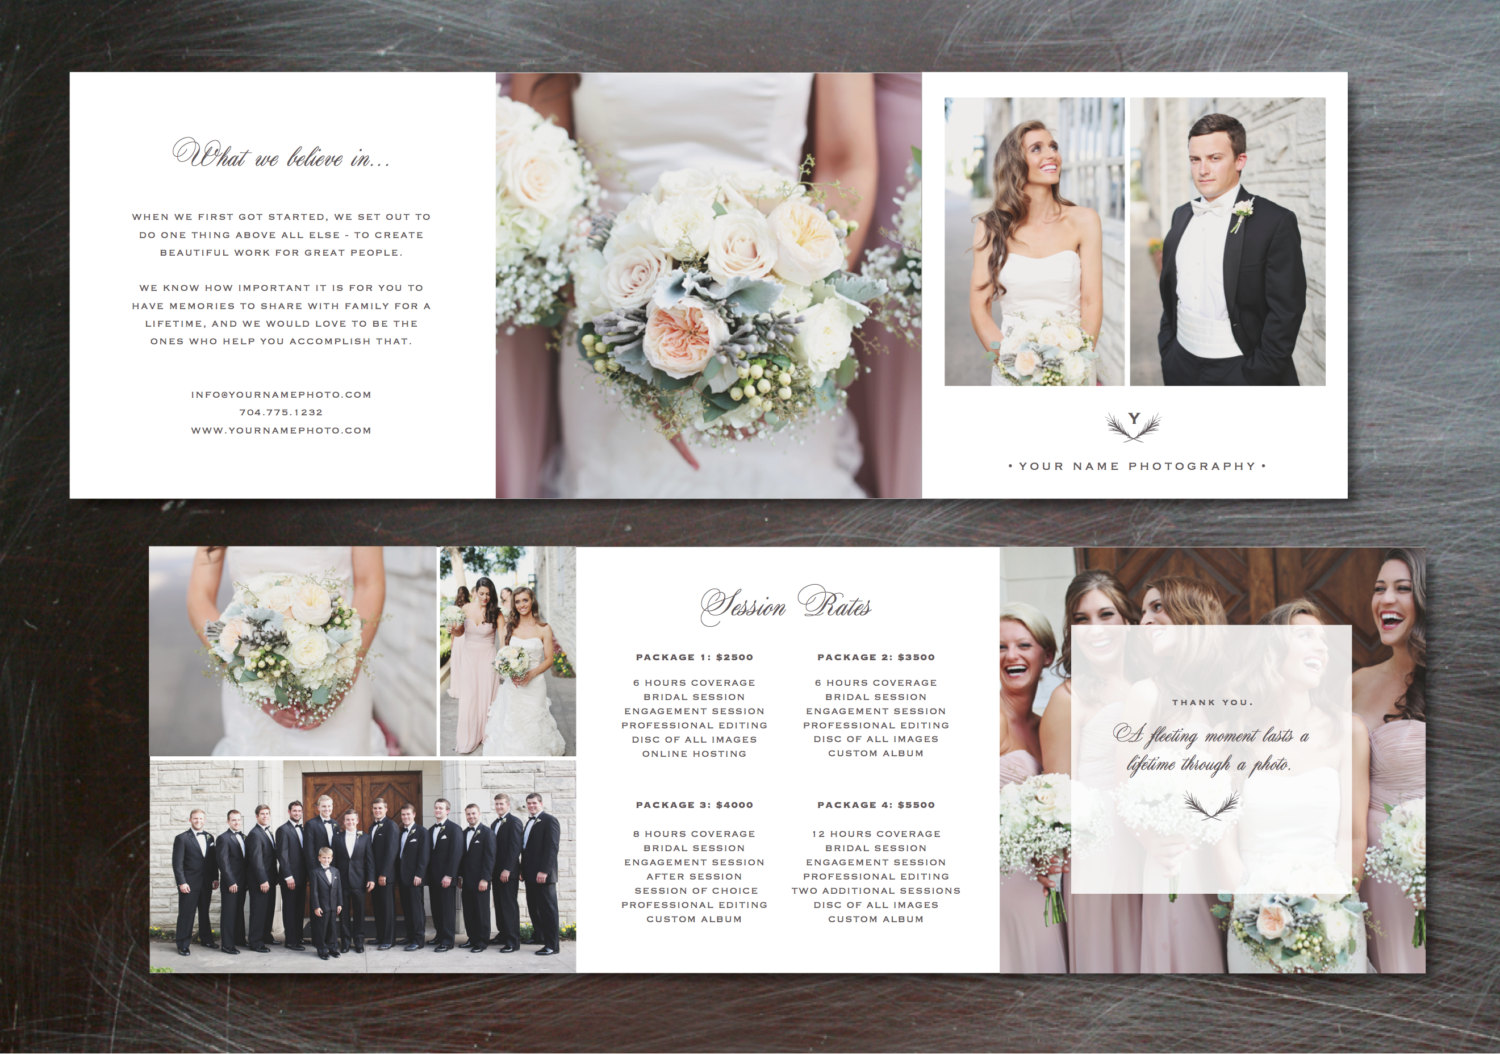 Template trifold pricing guide brochure templates on for Photography brochure templates free